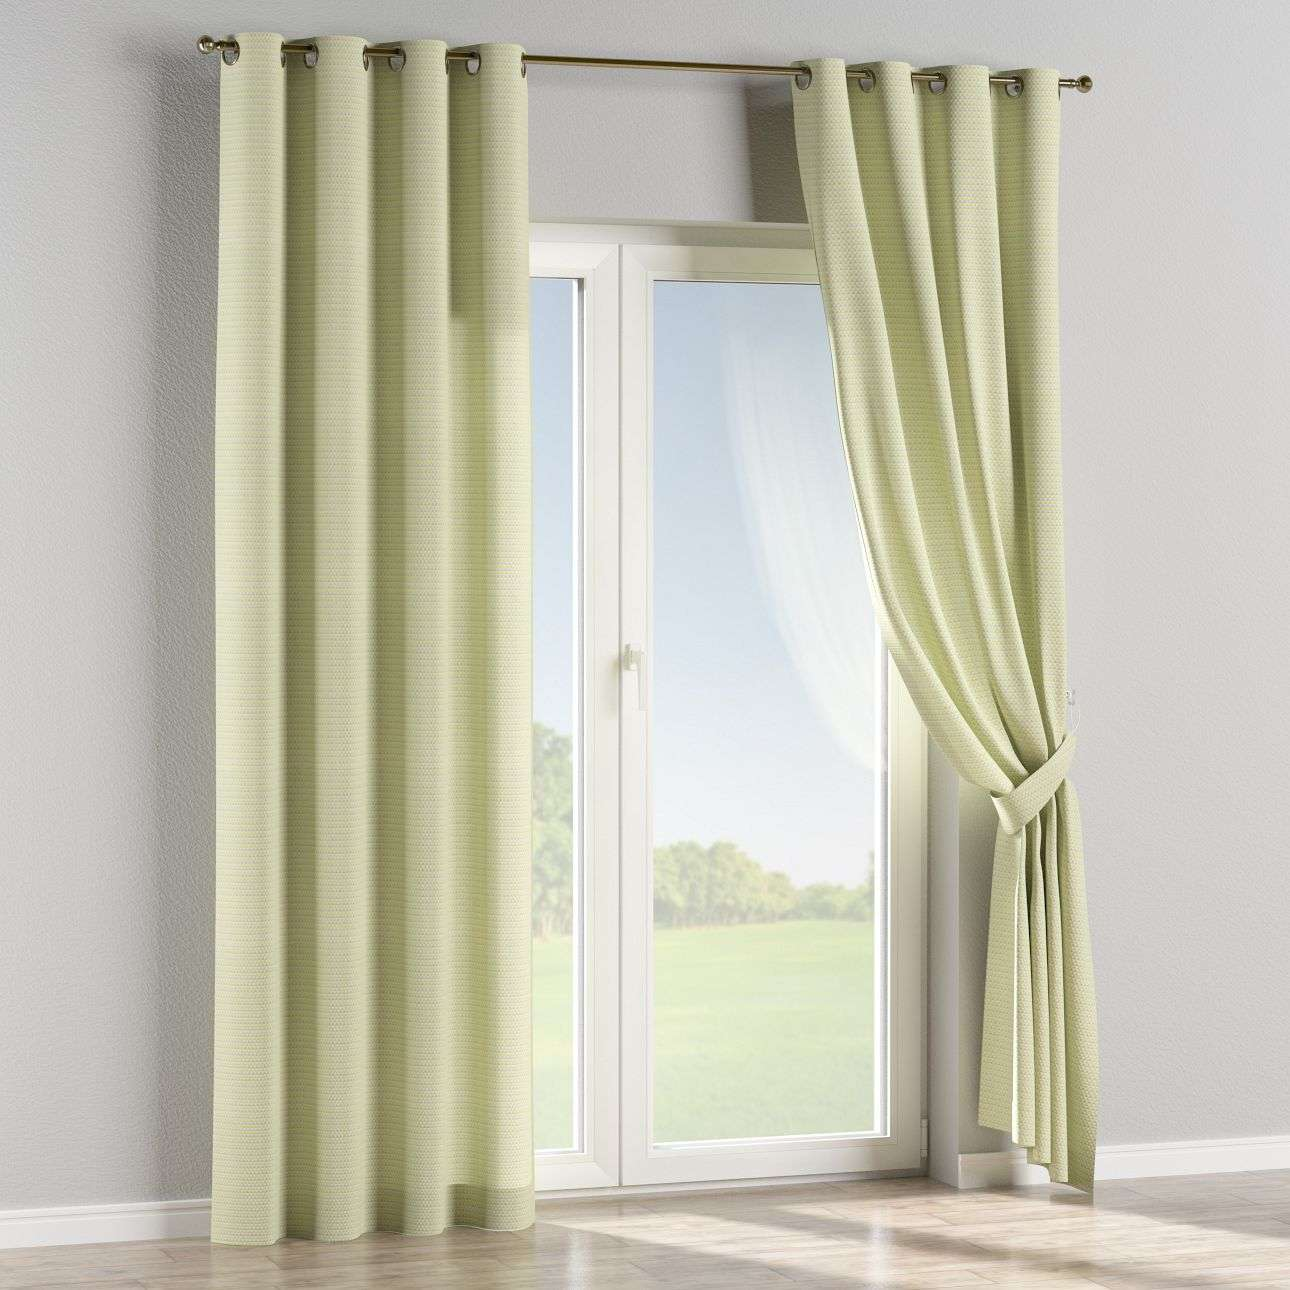 Eyelet curtains 130 x 260 cm (51 x 102 inch) in collection Rustica, fabric: 140-34